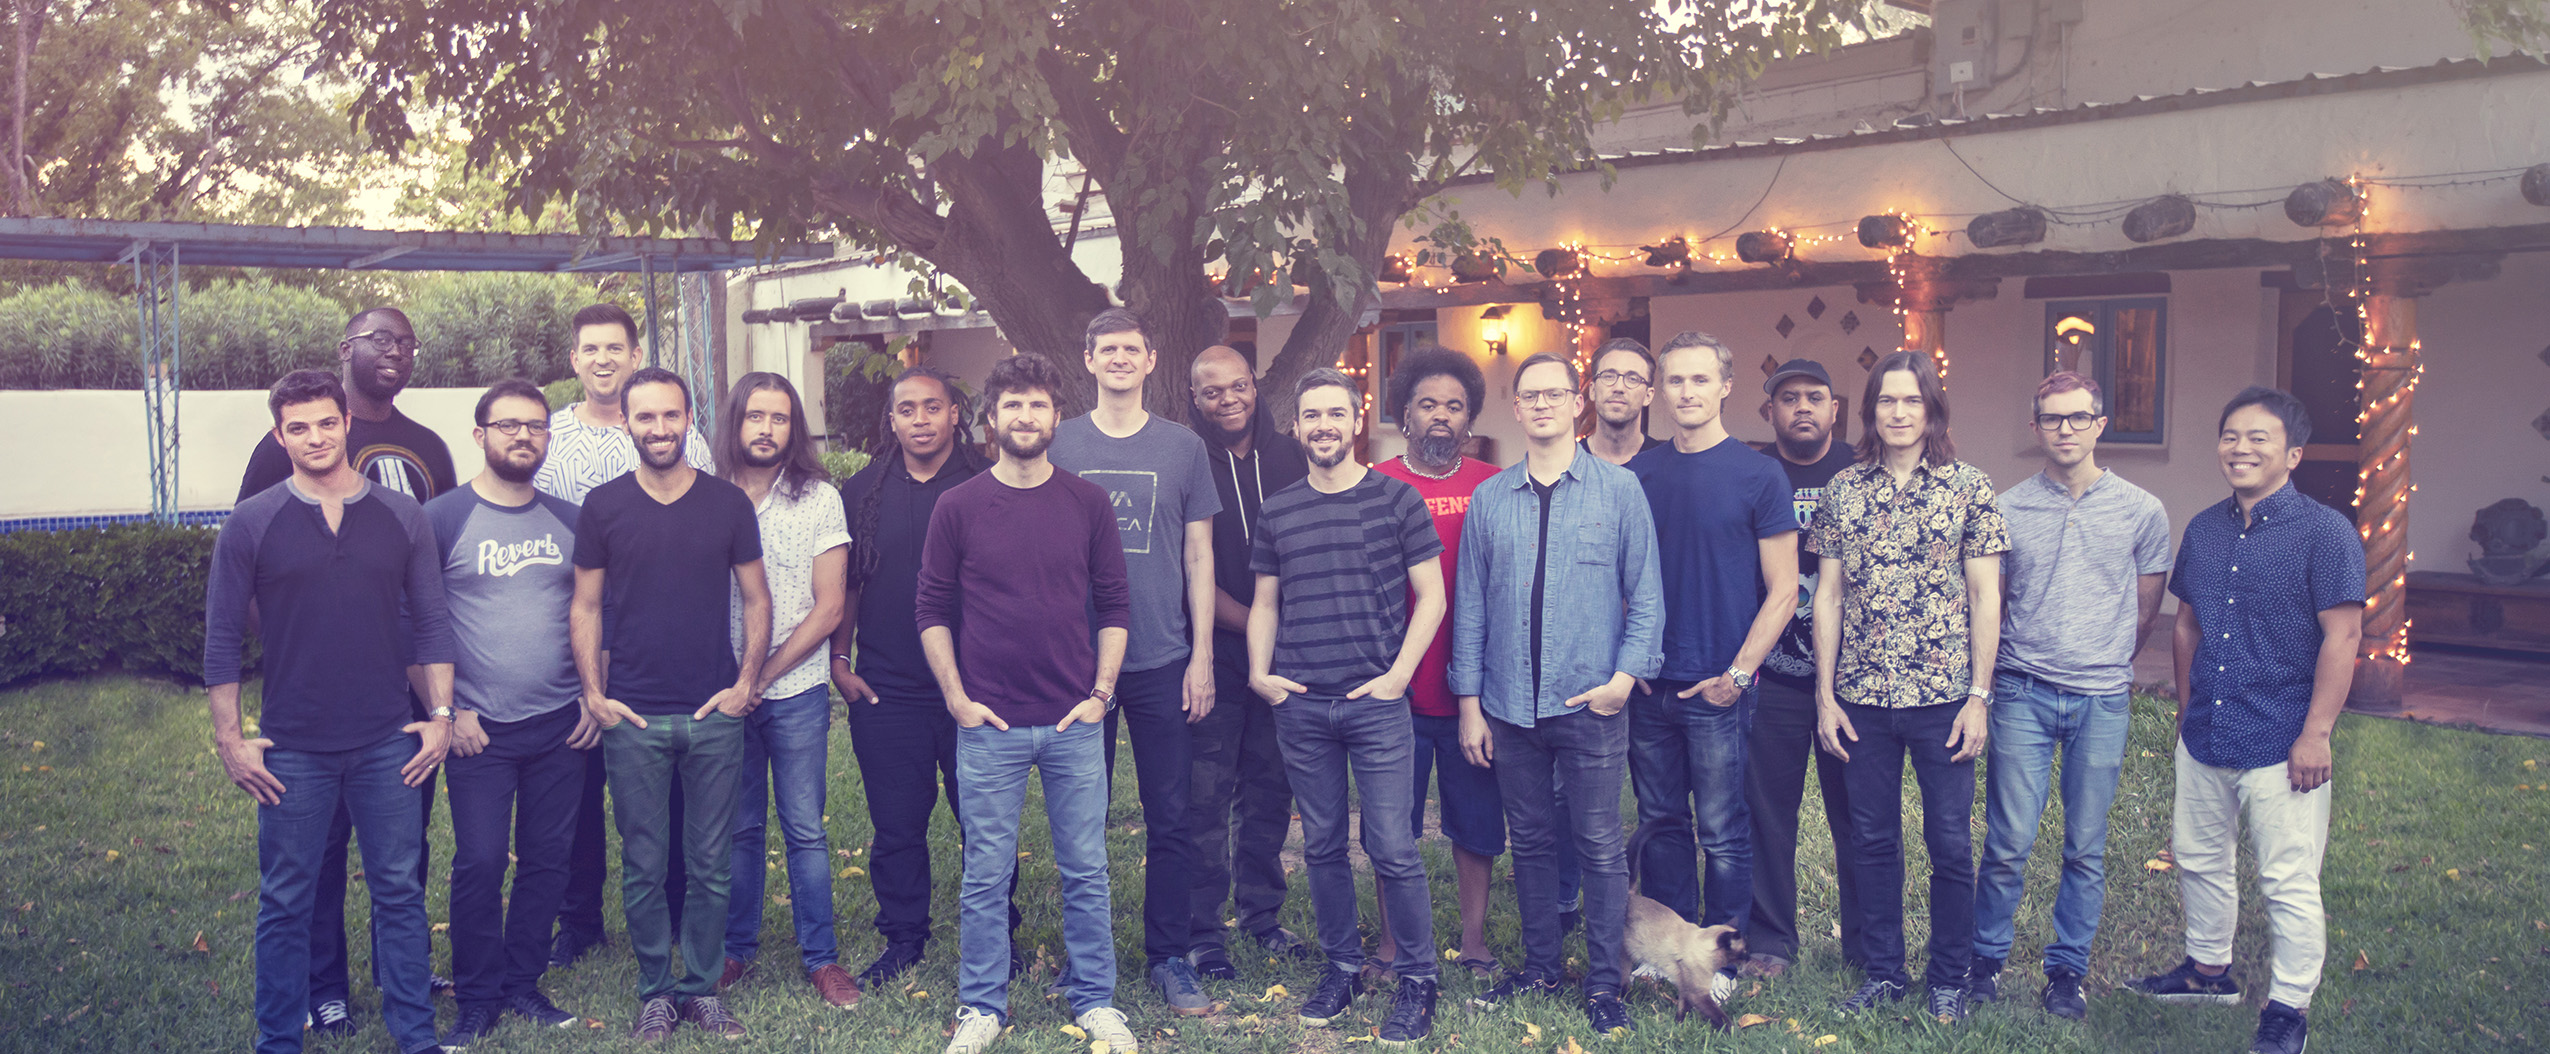 Photo of Snarky Puppy